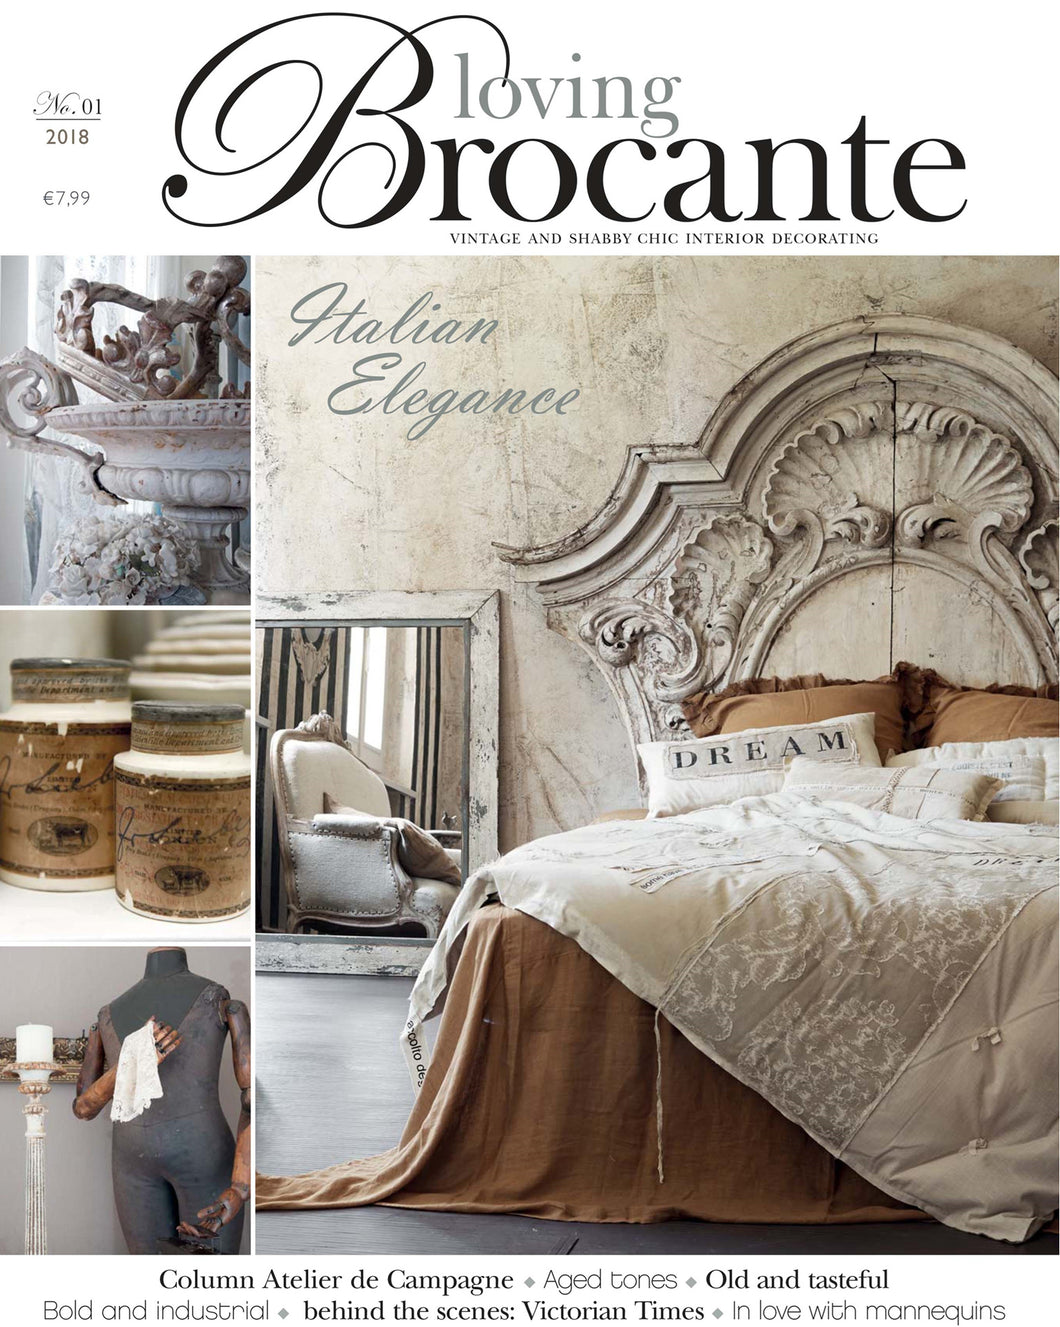 Loving Brocante Magazine No. 1 2018